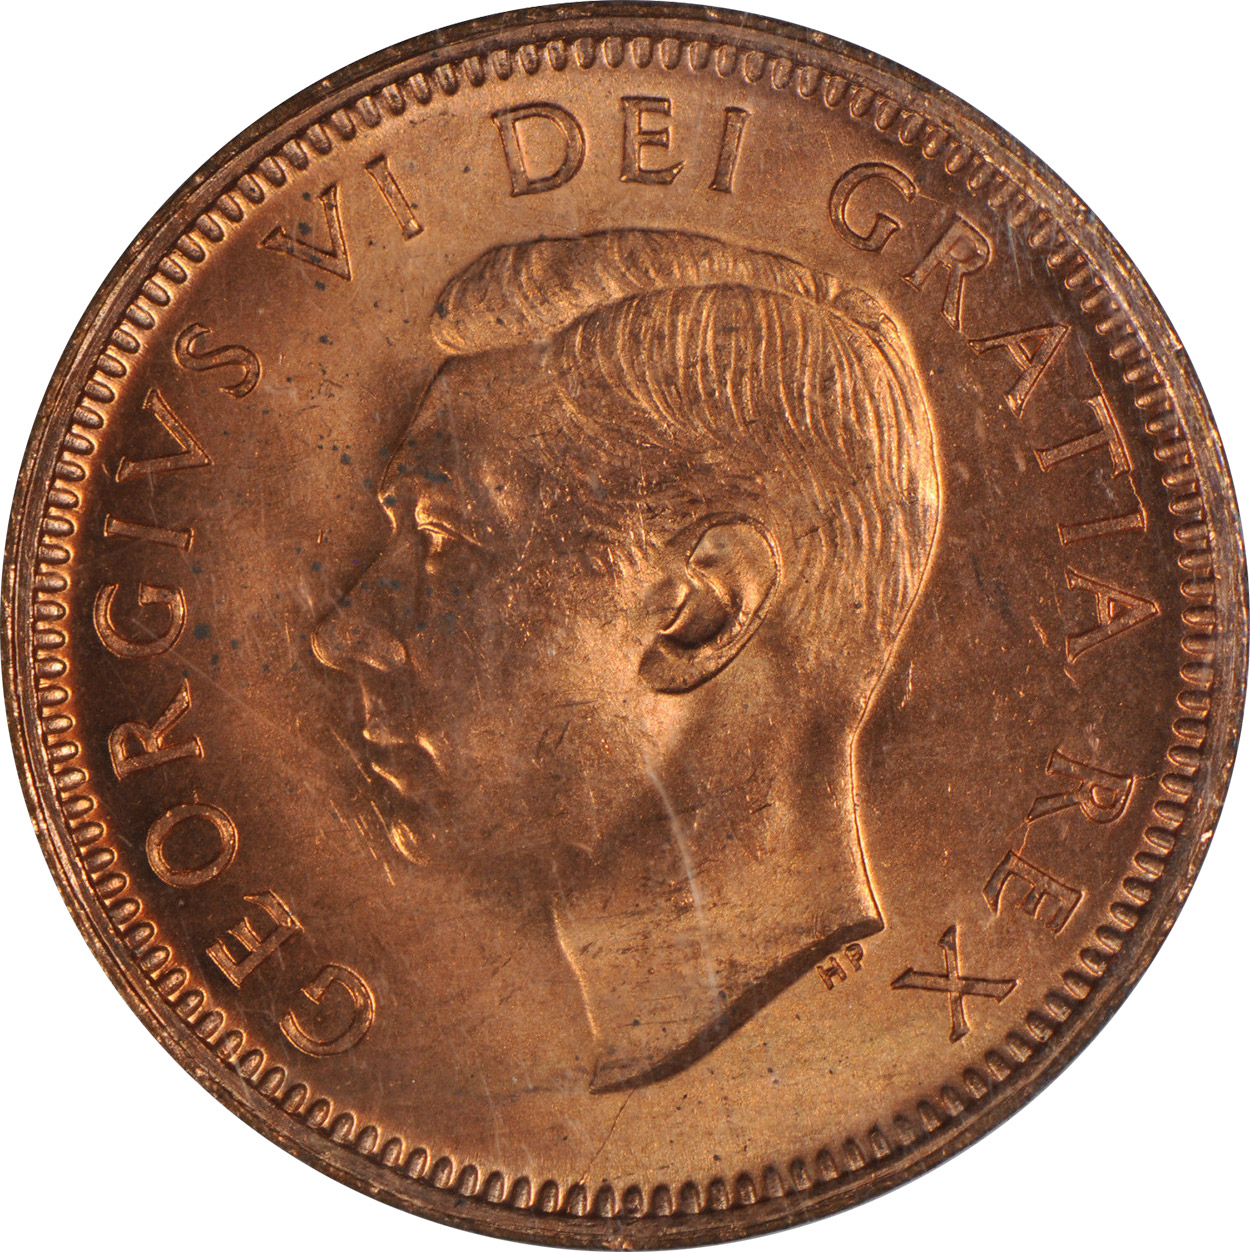 MS-60 - 1 cent 1937 to 1952 - George VI